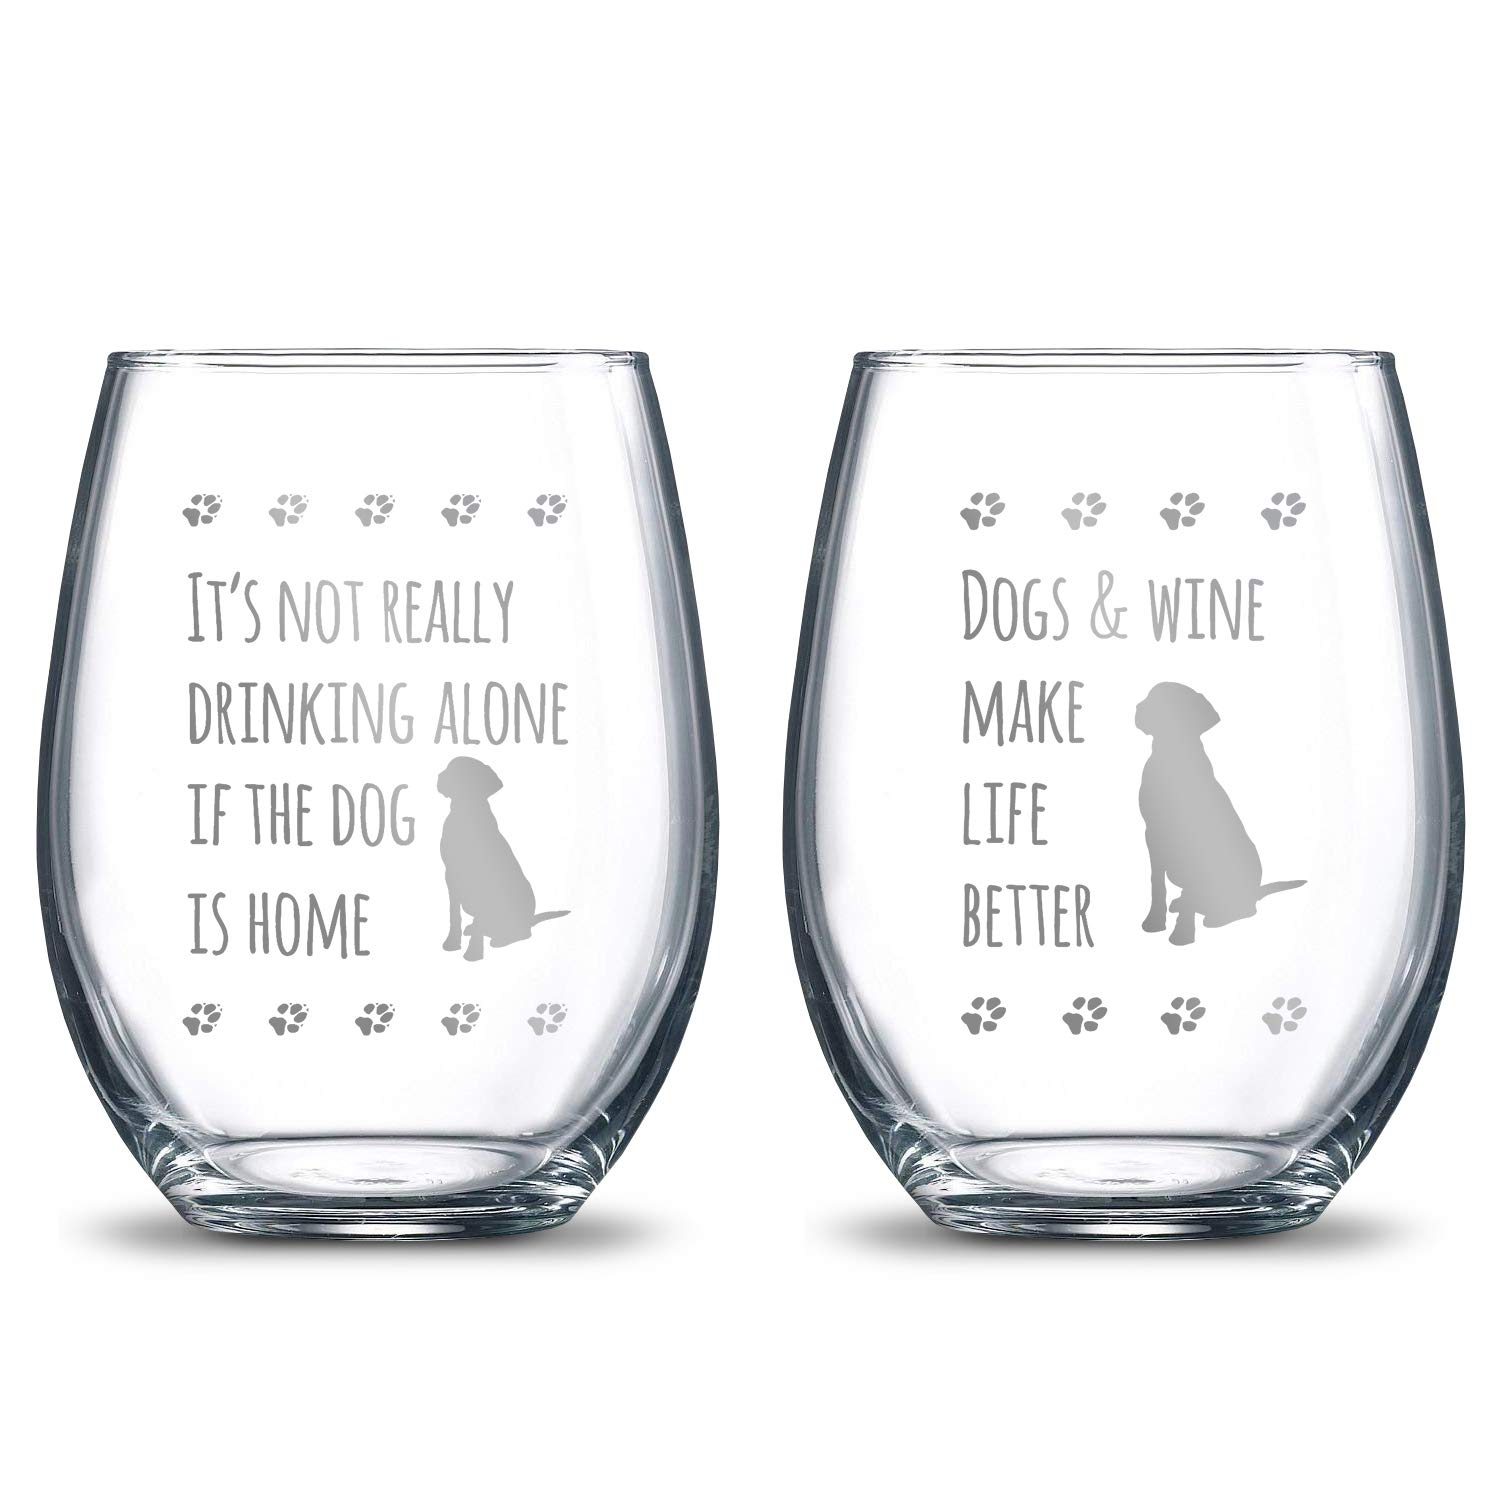 It's Not Really Drinking Alone if the Dog is Home + Dogs and Wine Make Life Better 21oz. Etched Stemless Wine Glasses | 2 Glass Set Packed in an Stylish Gift Box | The Perfect Dog Lovers Gift